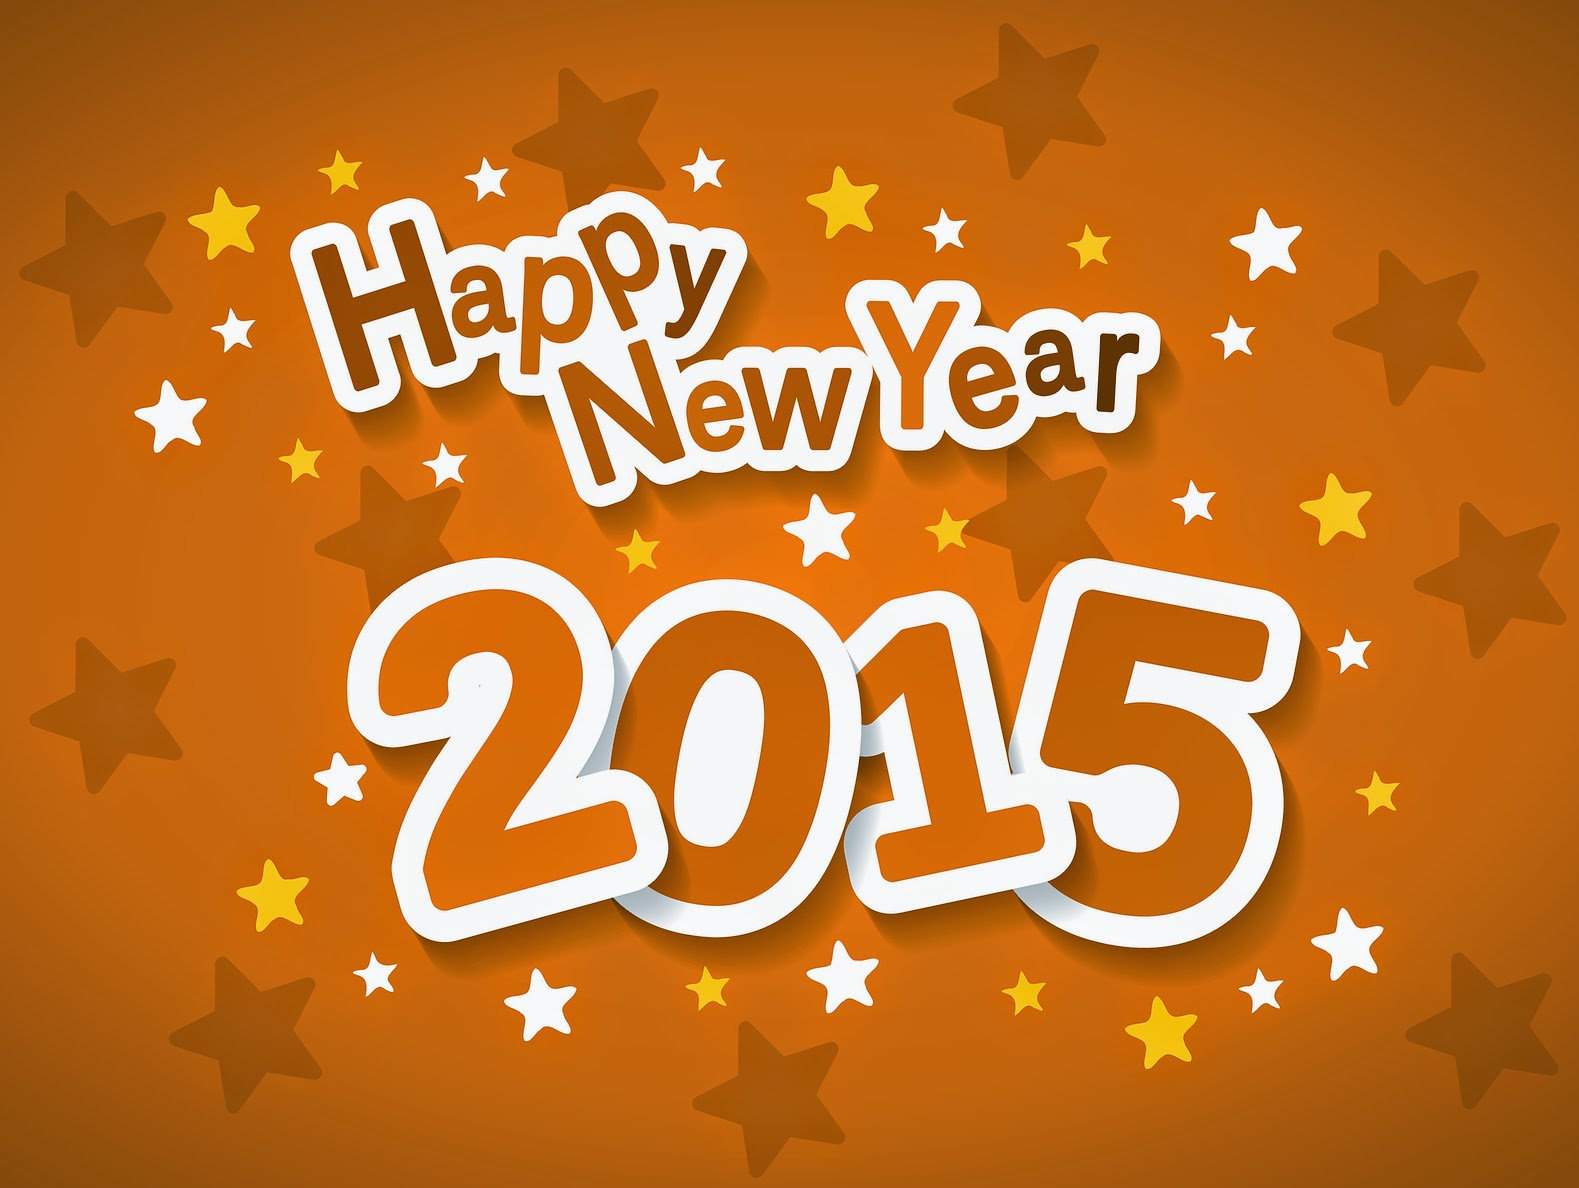 Happy new year 2015 greetings cards wallpapers images wishes hope you like our wallpapers greetings for new year 2015 keep visiting our website for new greetings wallpapers kristyandbryce Gallery